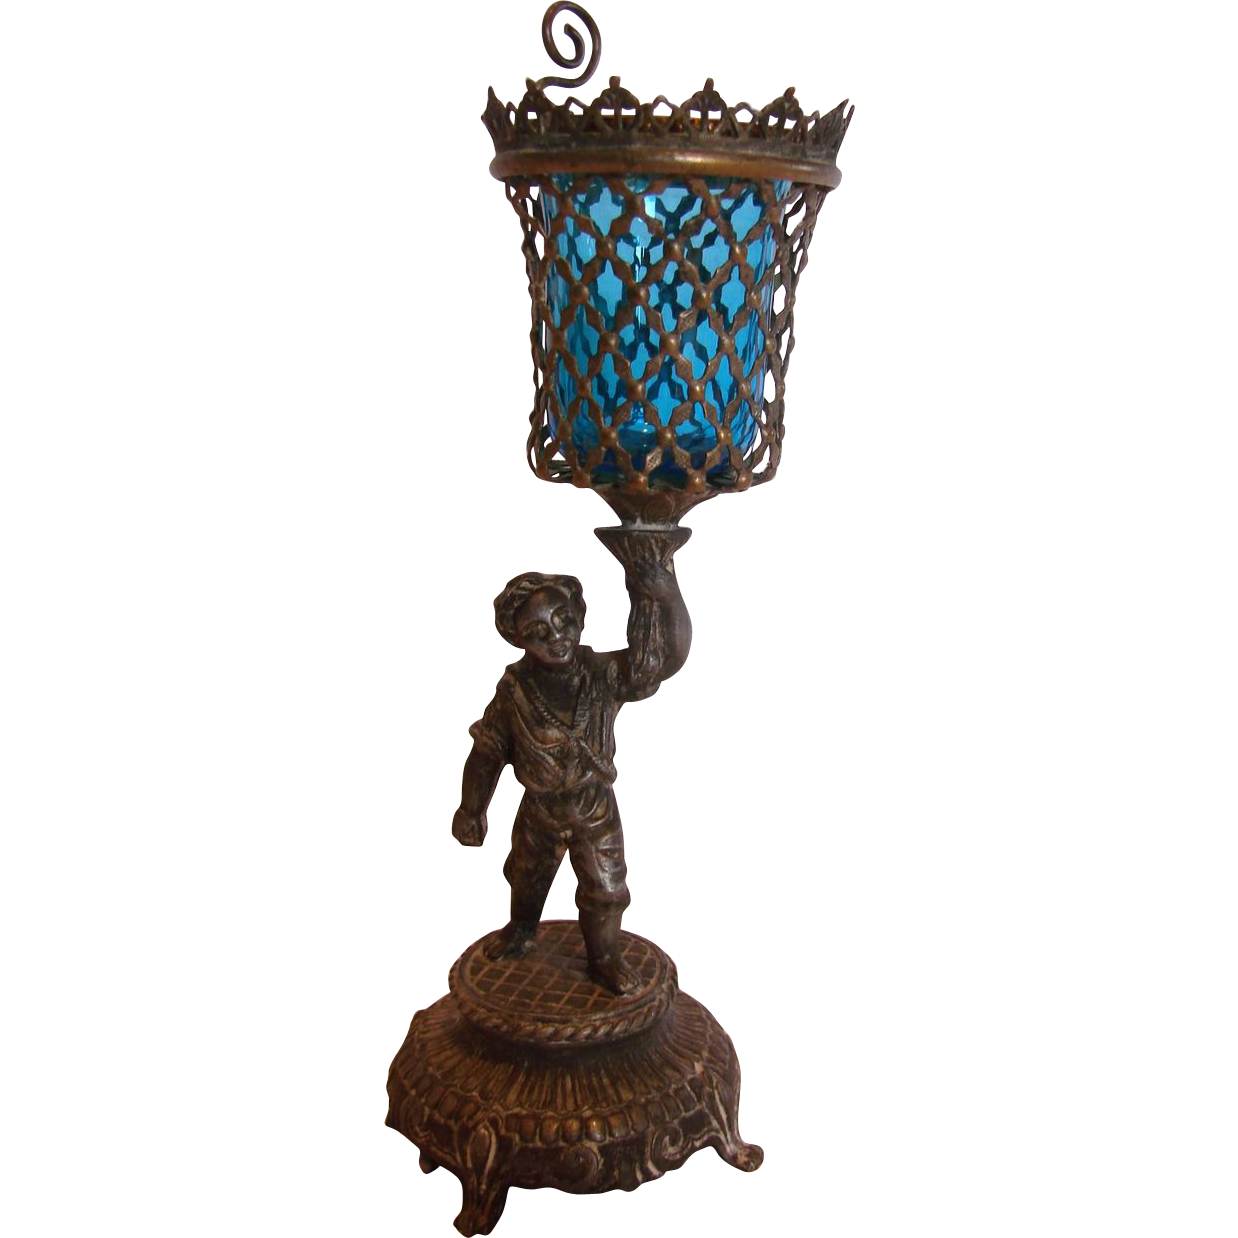 French Metal Boy Figure Holding a Reticulated Basket w Blue Art Glass Insert Epergne Vase or Candle Stick Holder c 1870